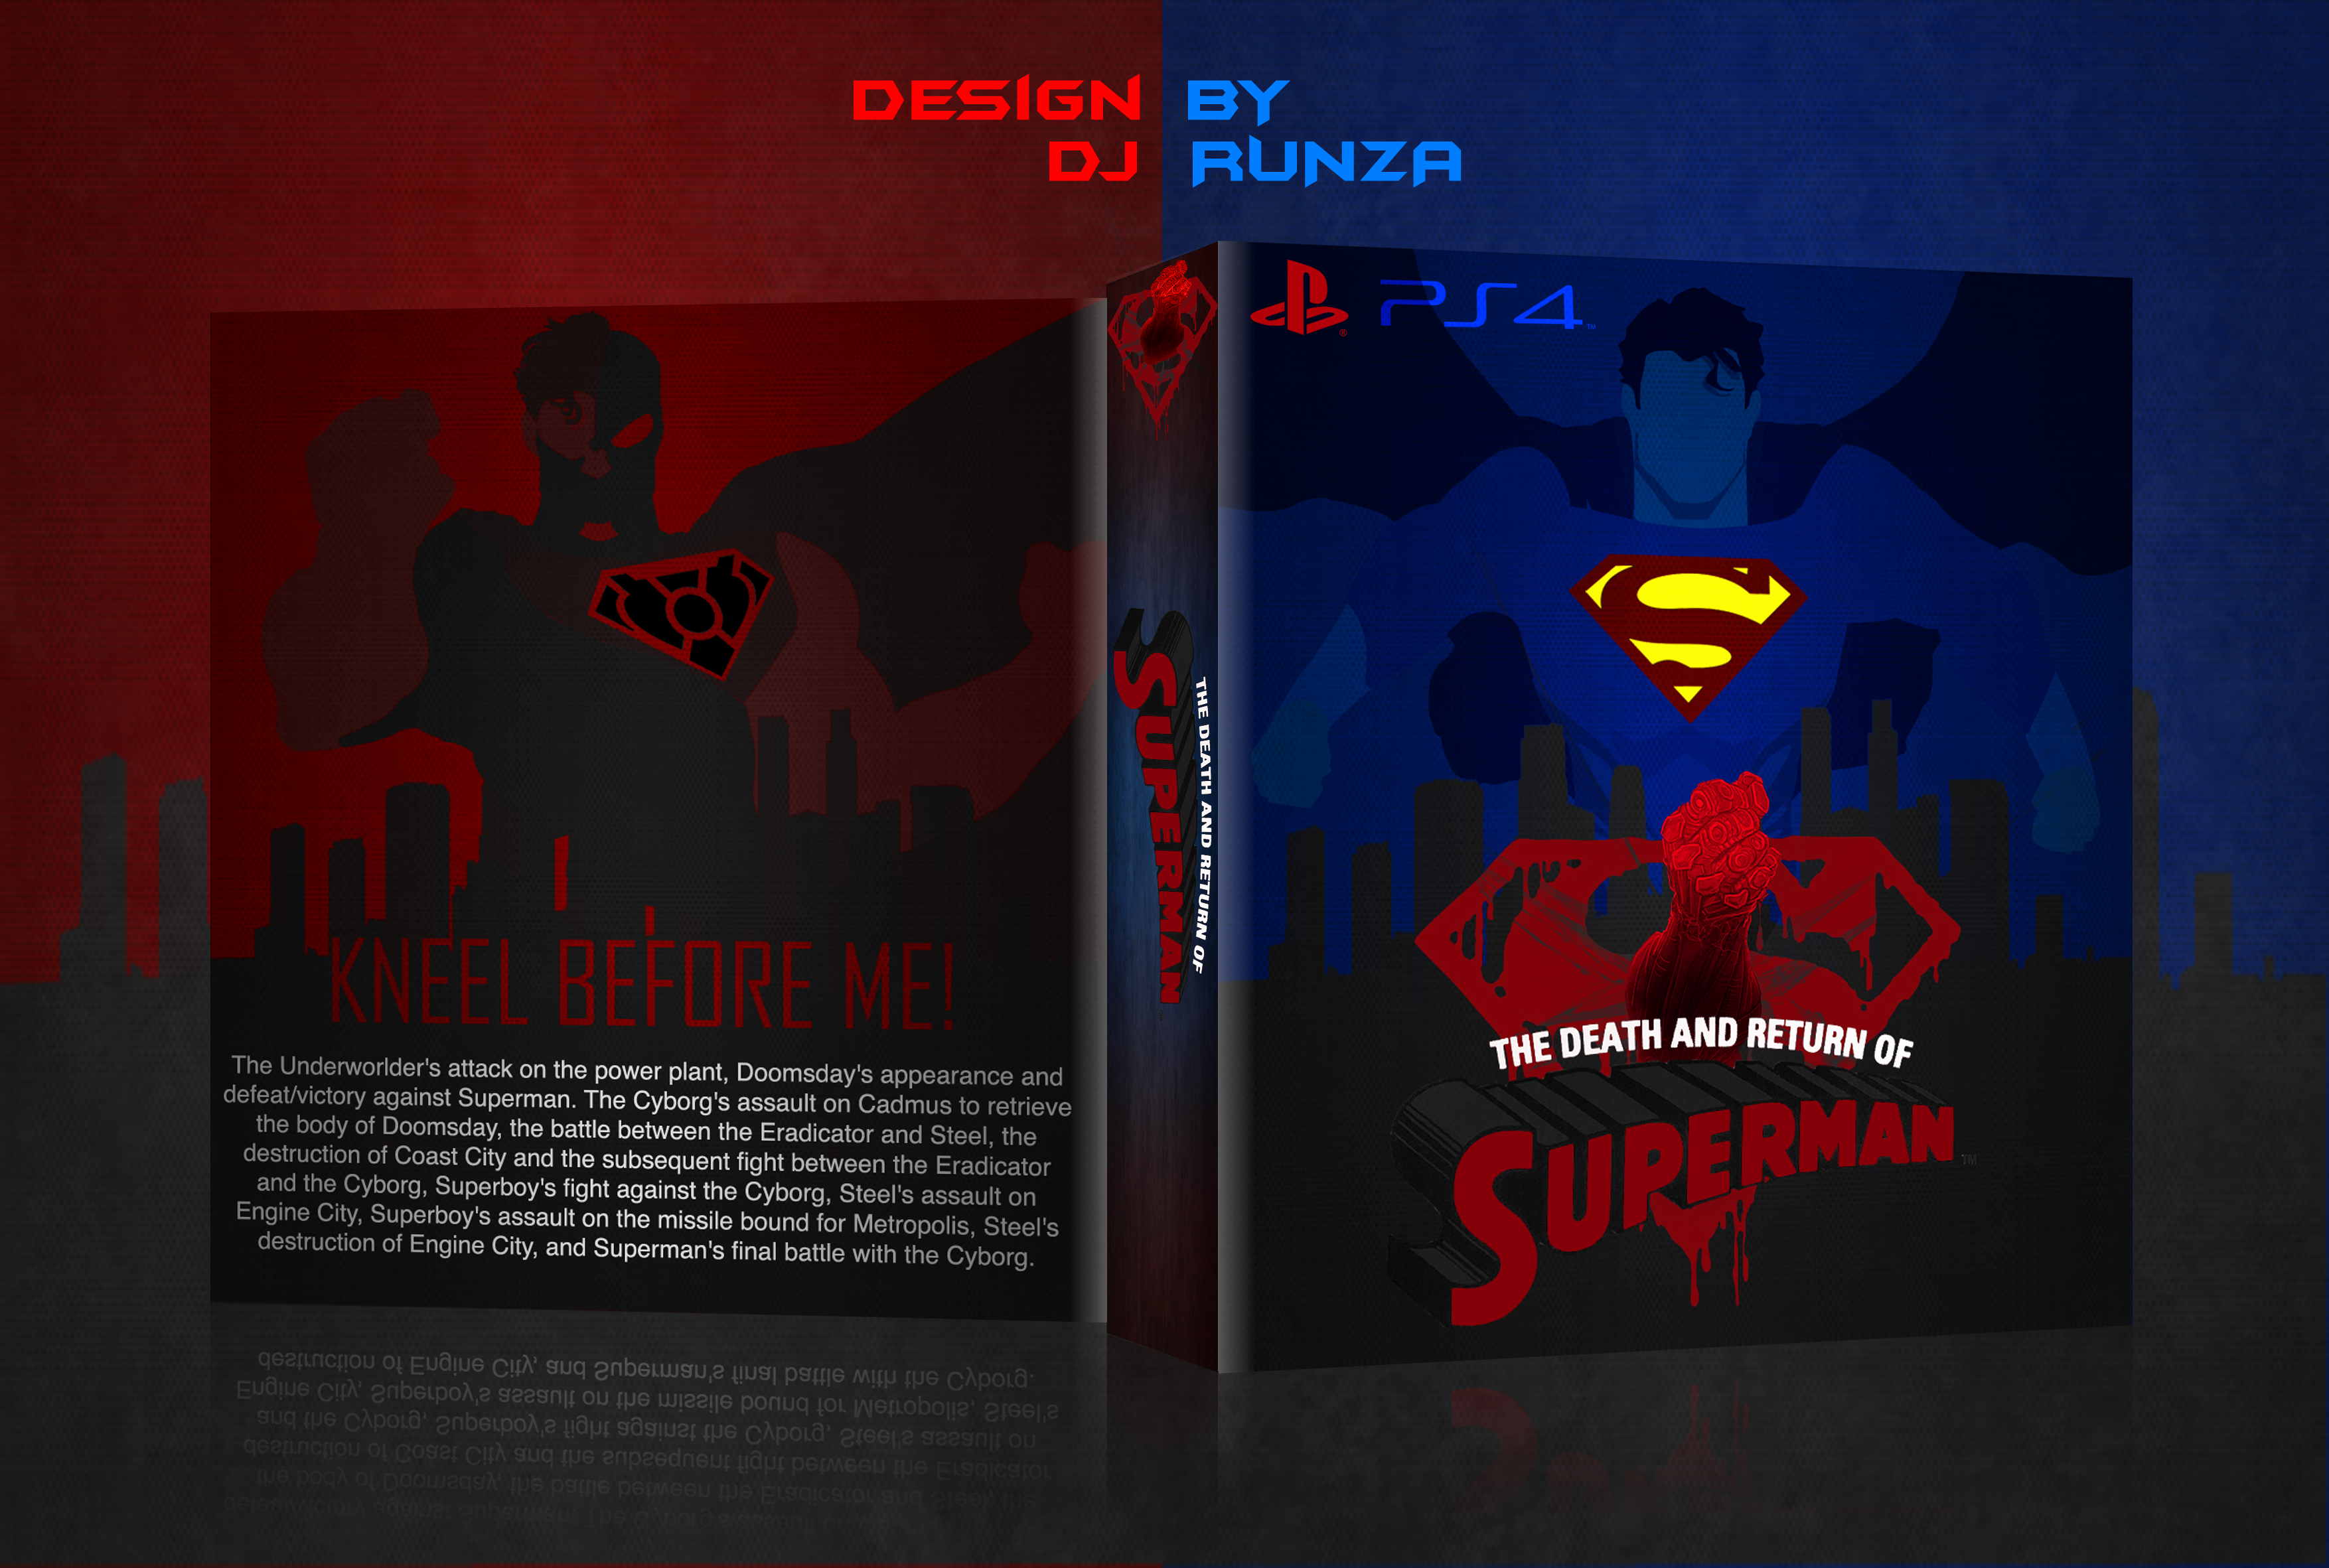 The Death And Return Of Superman box cover